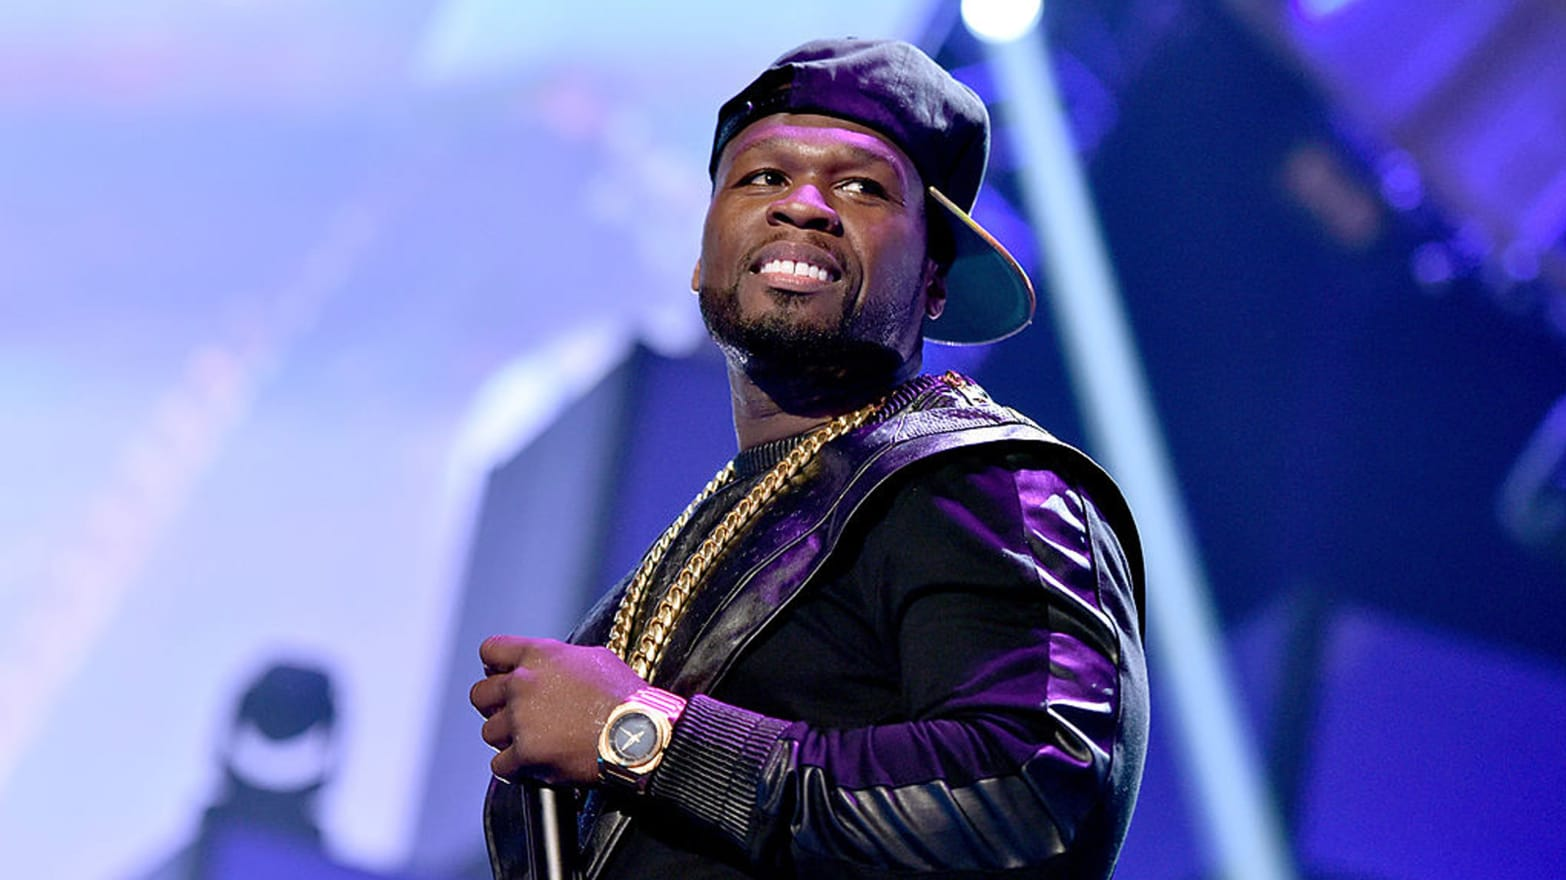 50 Cent on Bobby Shmurda: 'Give Me a Homicide Before You